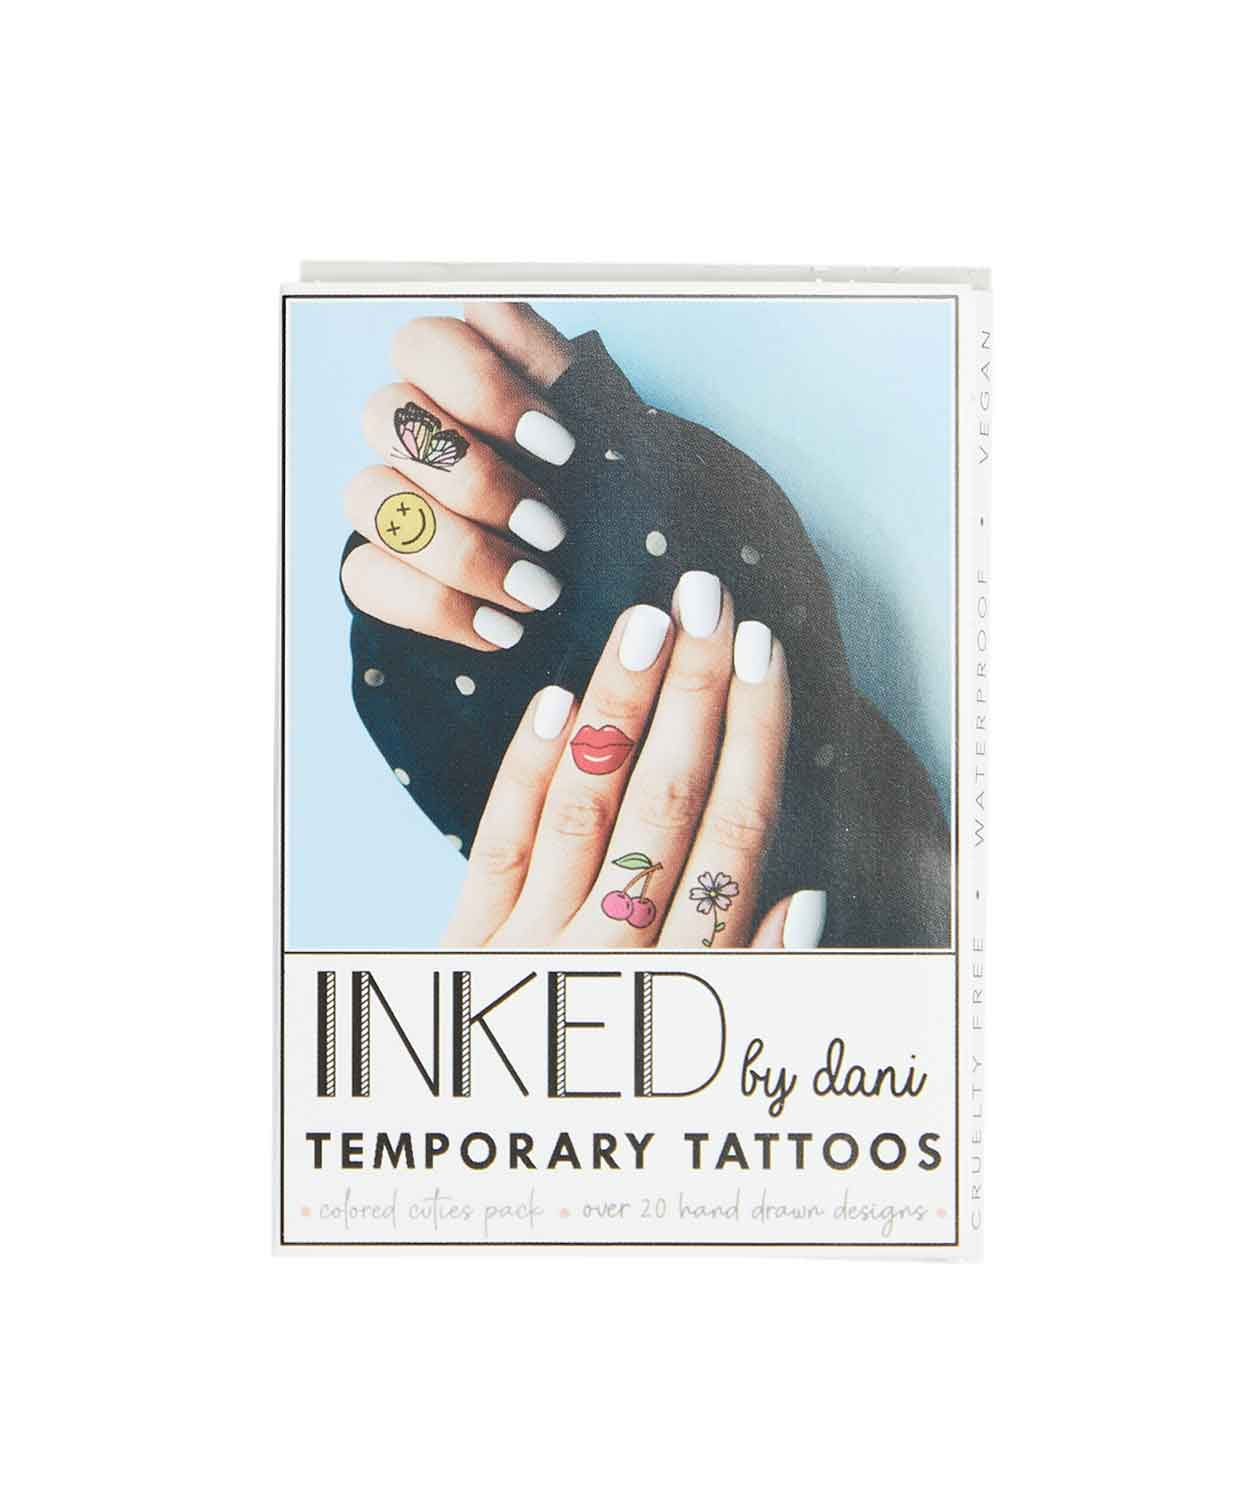 Temporary Tattoos Colored Cuties Pack